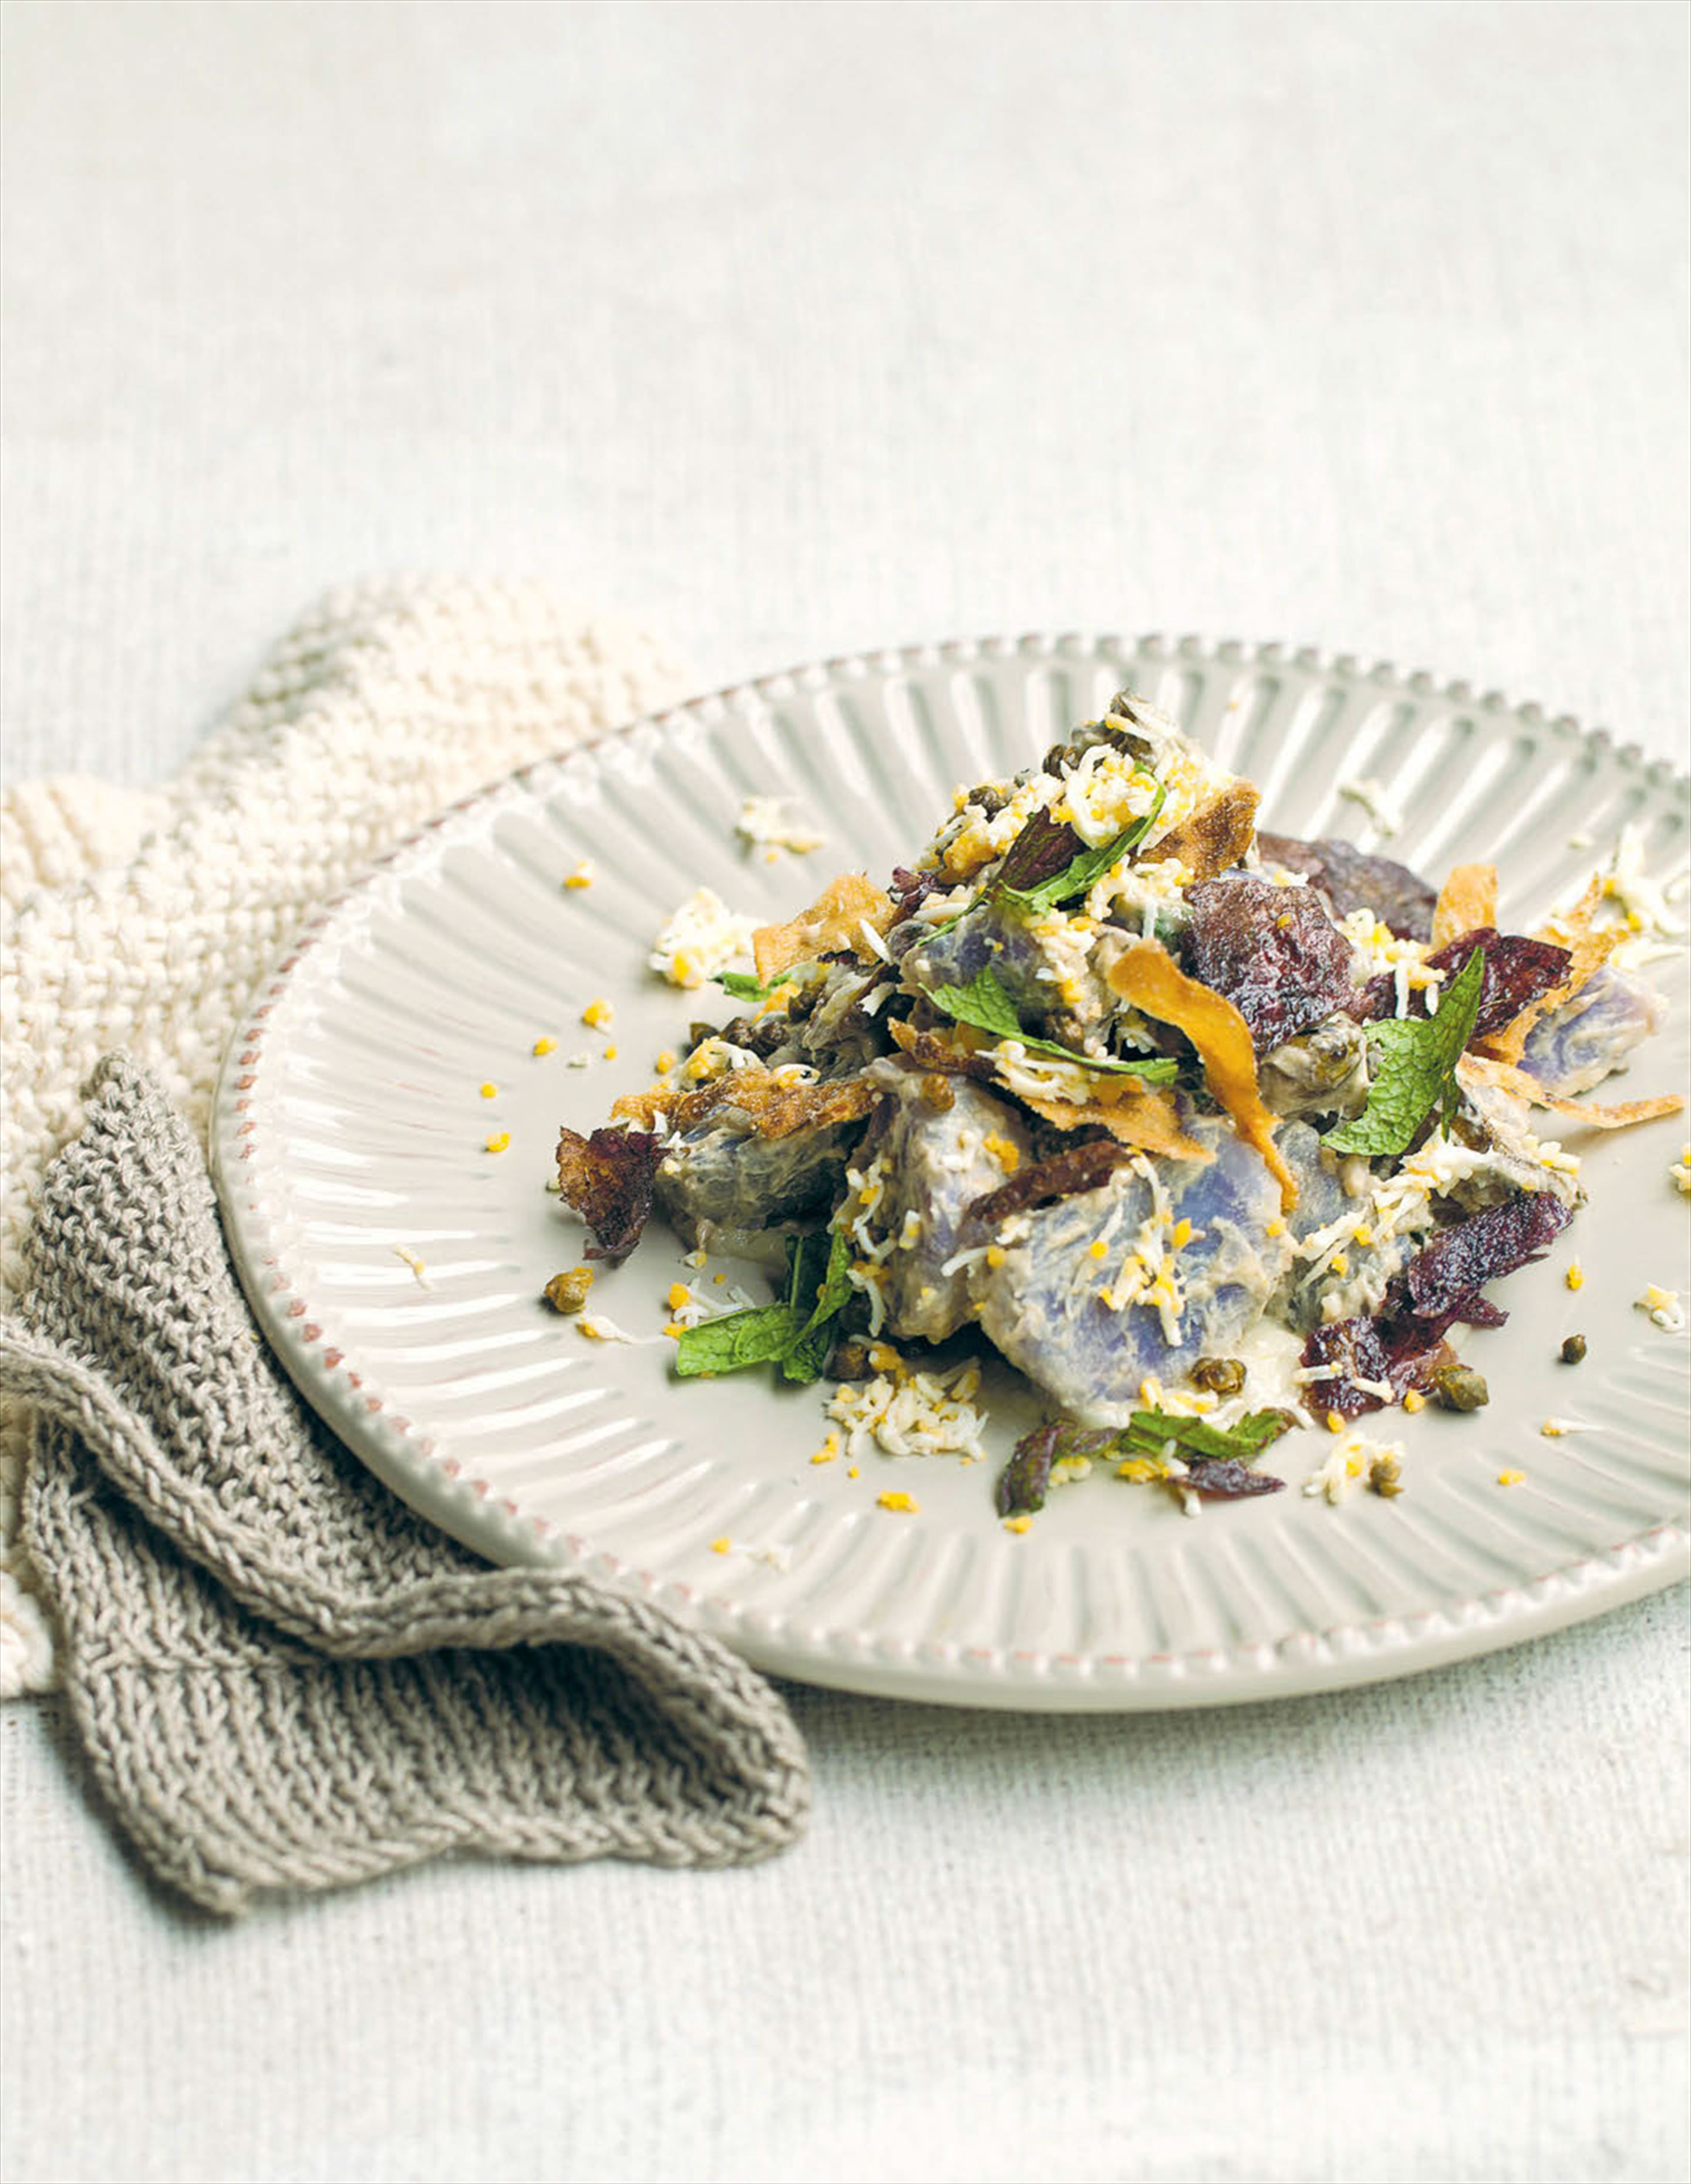 Purple congo potatoes, sunchokes and anchovy dressing